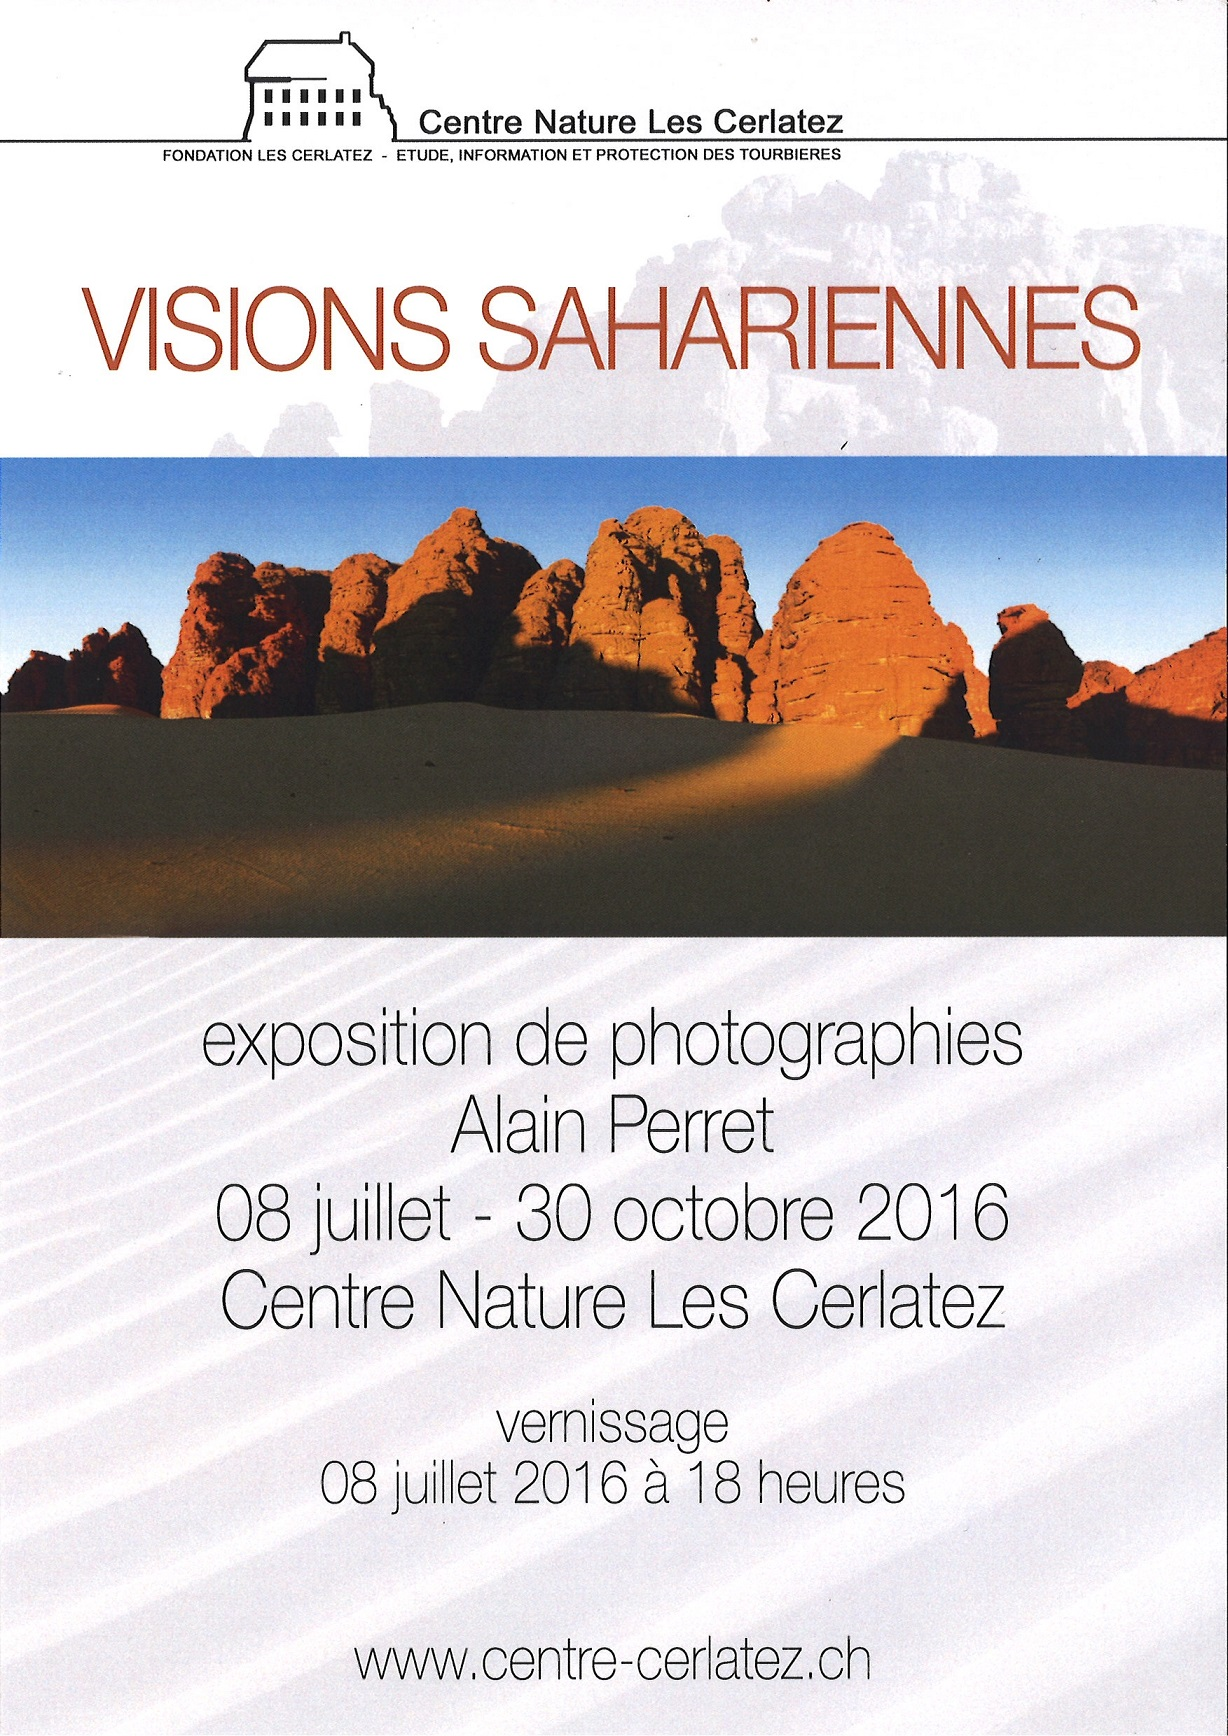 Expo Alain Perret_Visions sahariennes